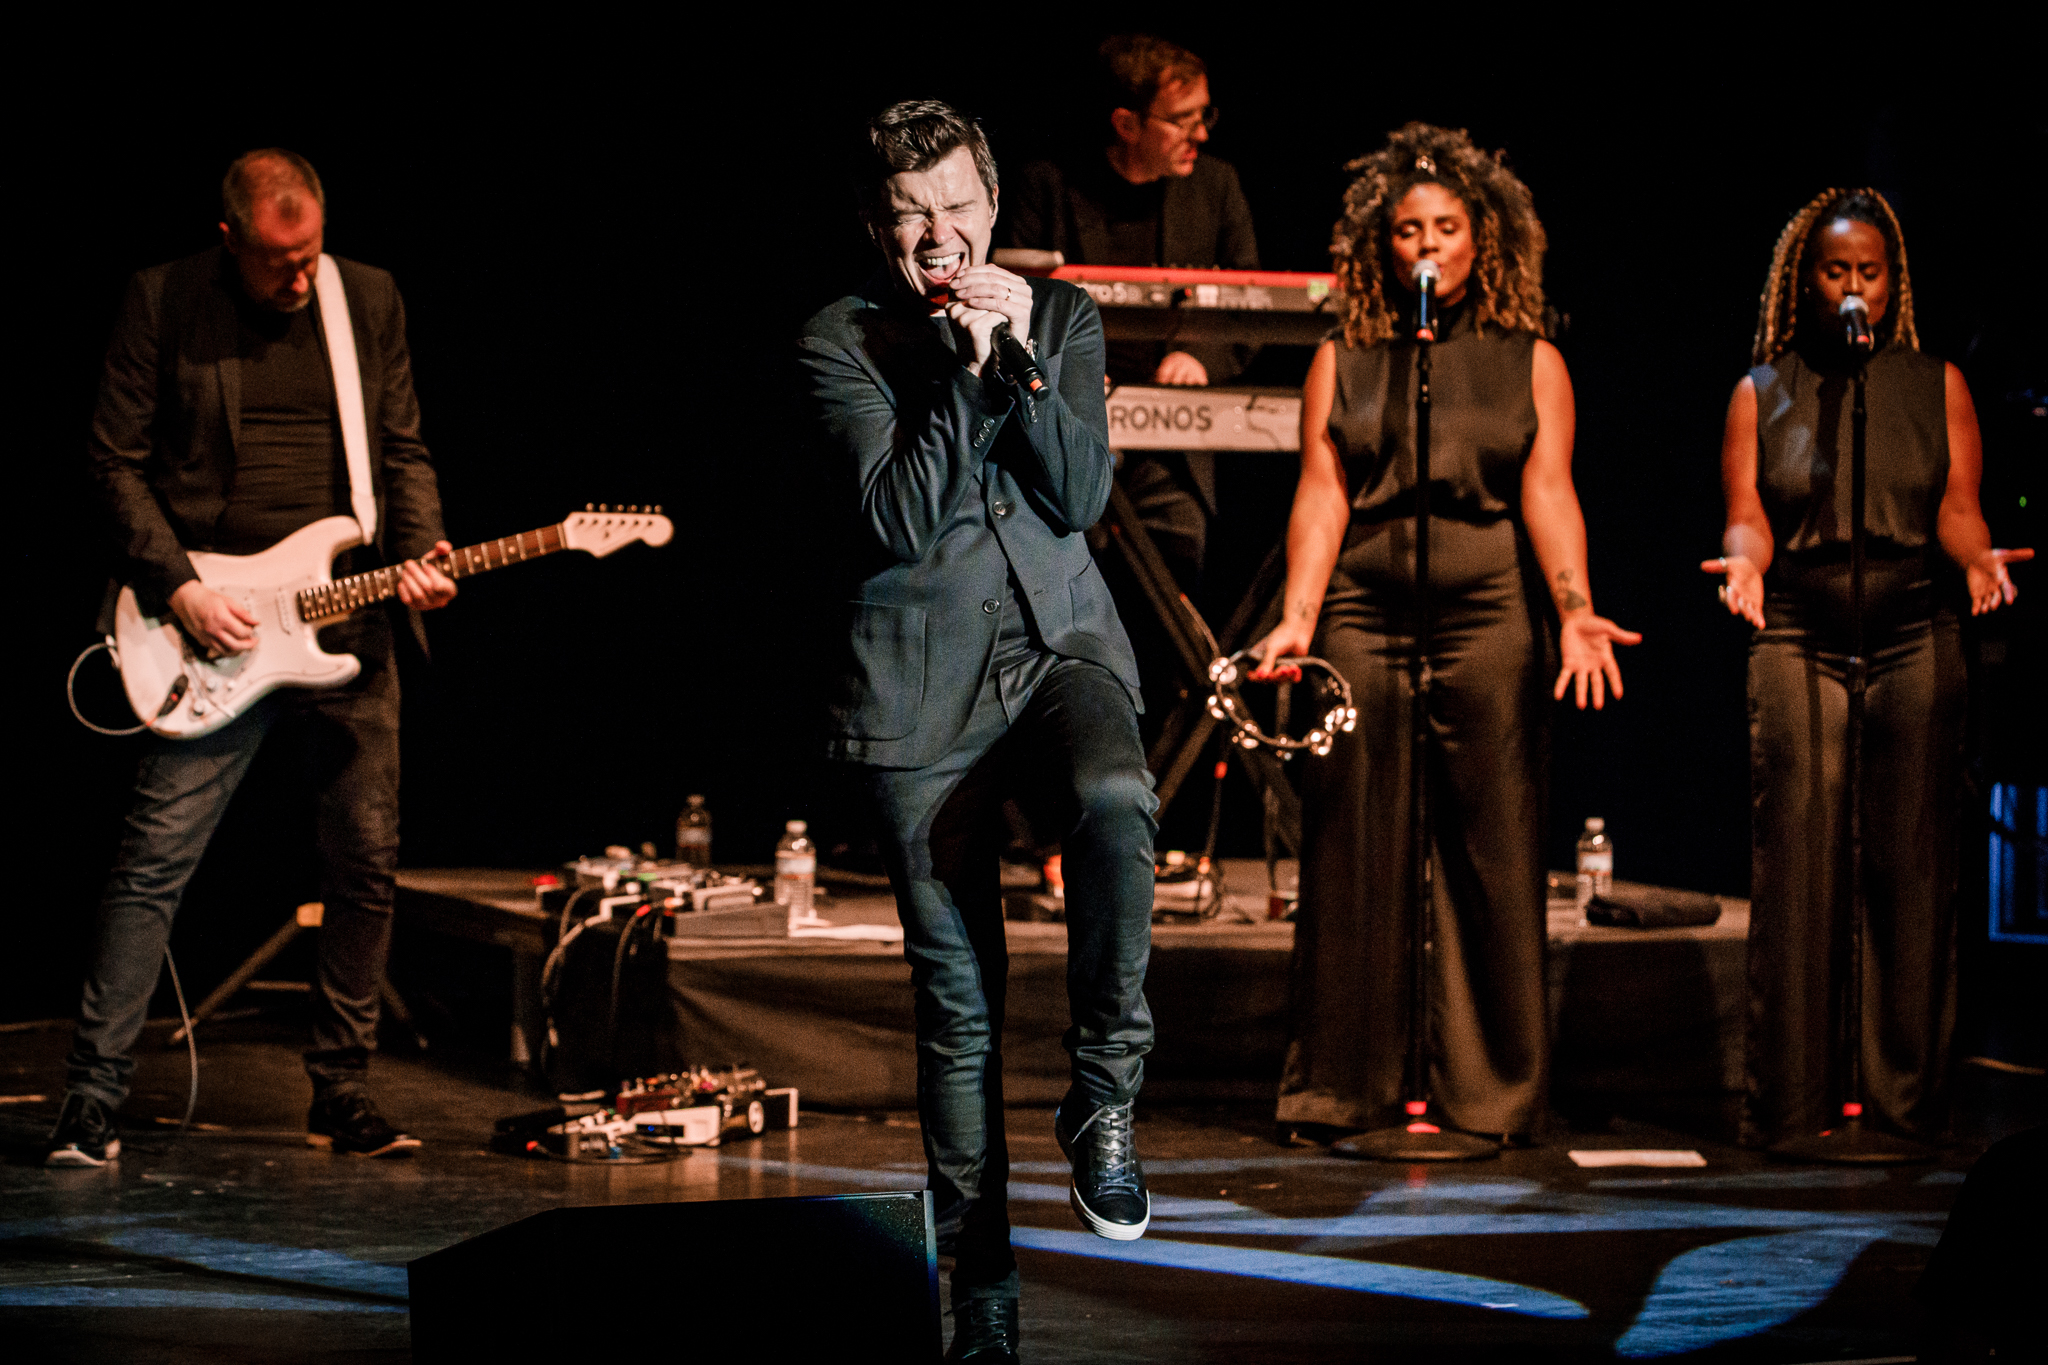 Rick Astley performing at the Lincoln Theatre in Washington, DC - 4/18/2018 (photo by Matt Condon / @arcane93)